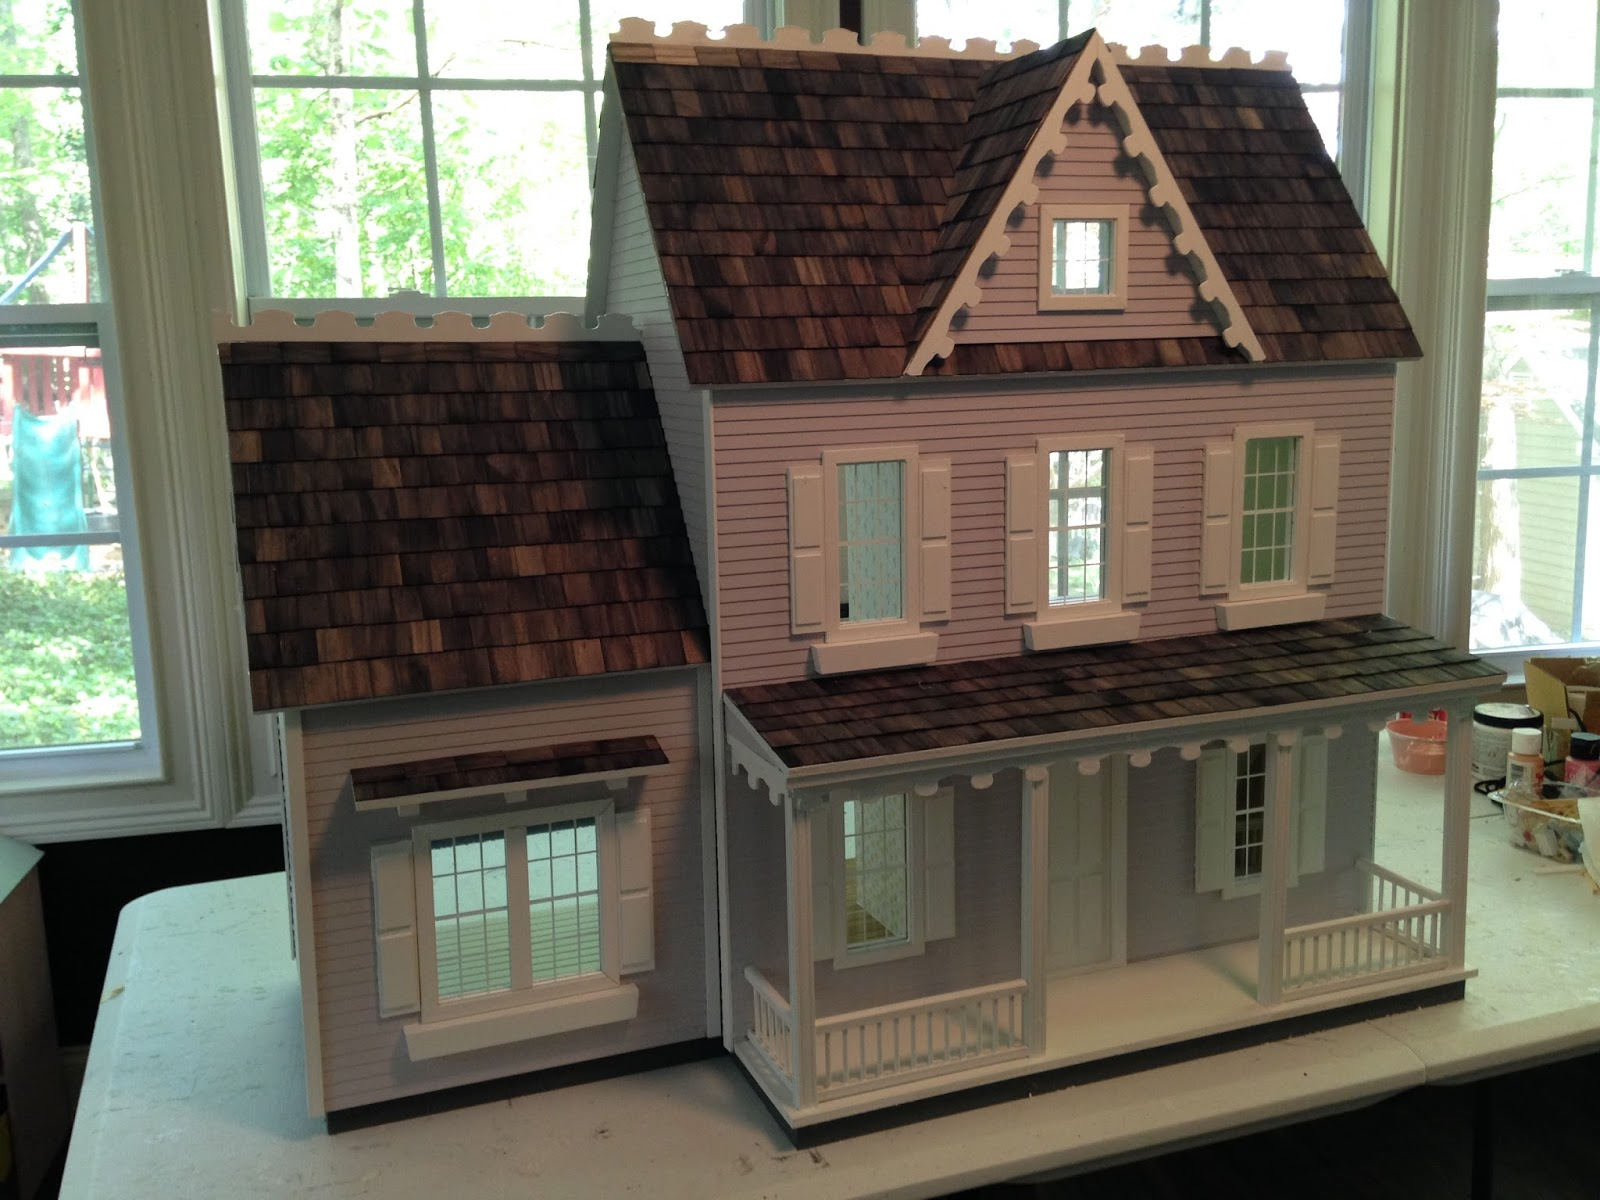 The Dollhouse Was Painted A Light Purple Color With White Trim And Gray Shingles